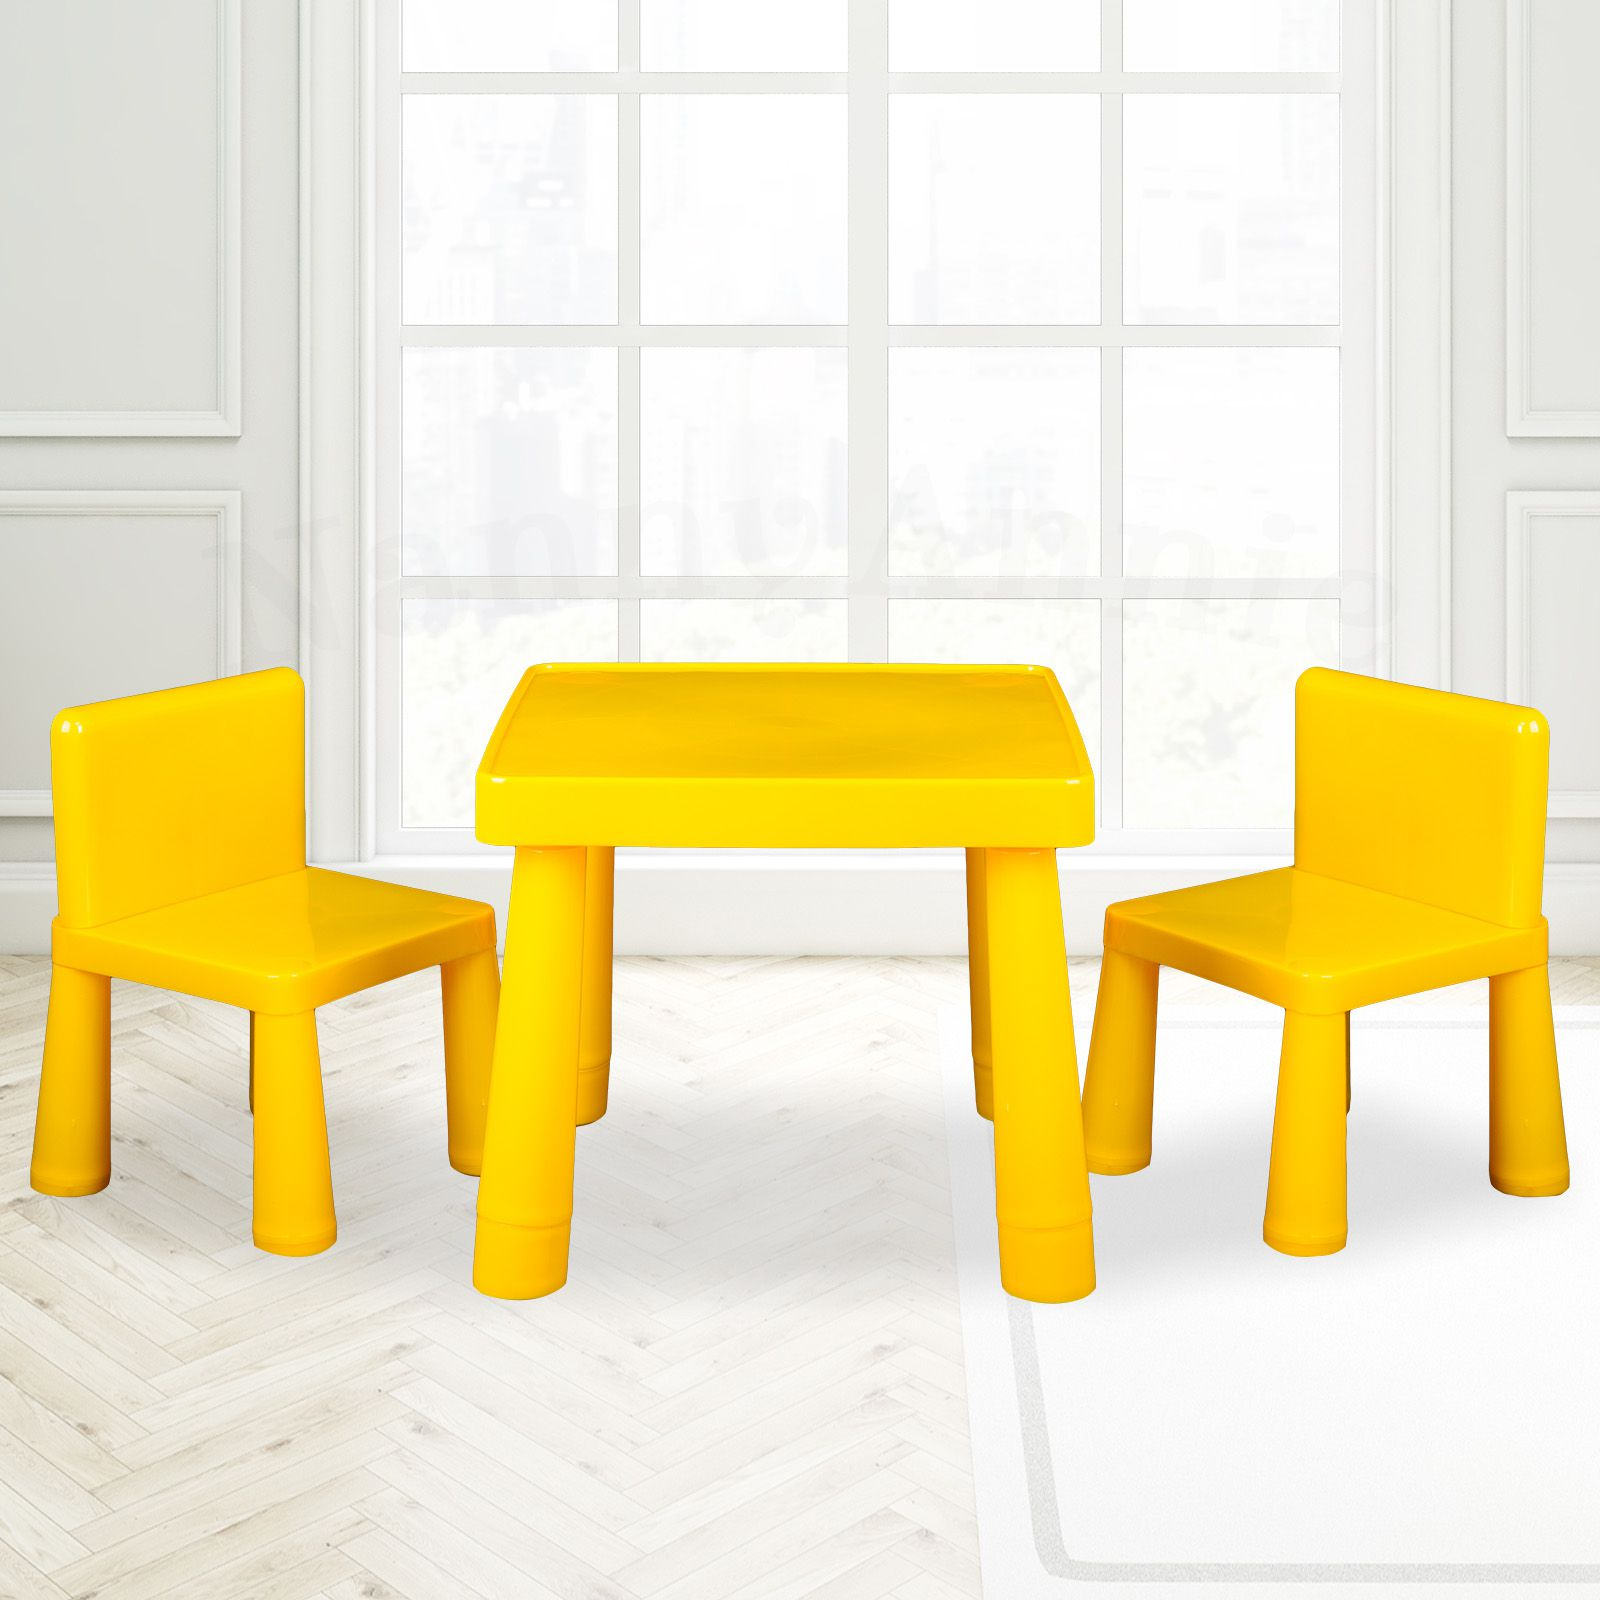 Kids Table Amp Chair Play Furniture Set Plastic Activity Dining Chairs Yellow